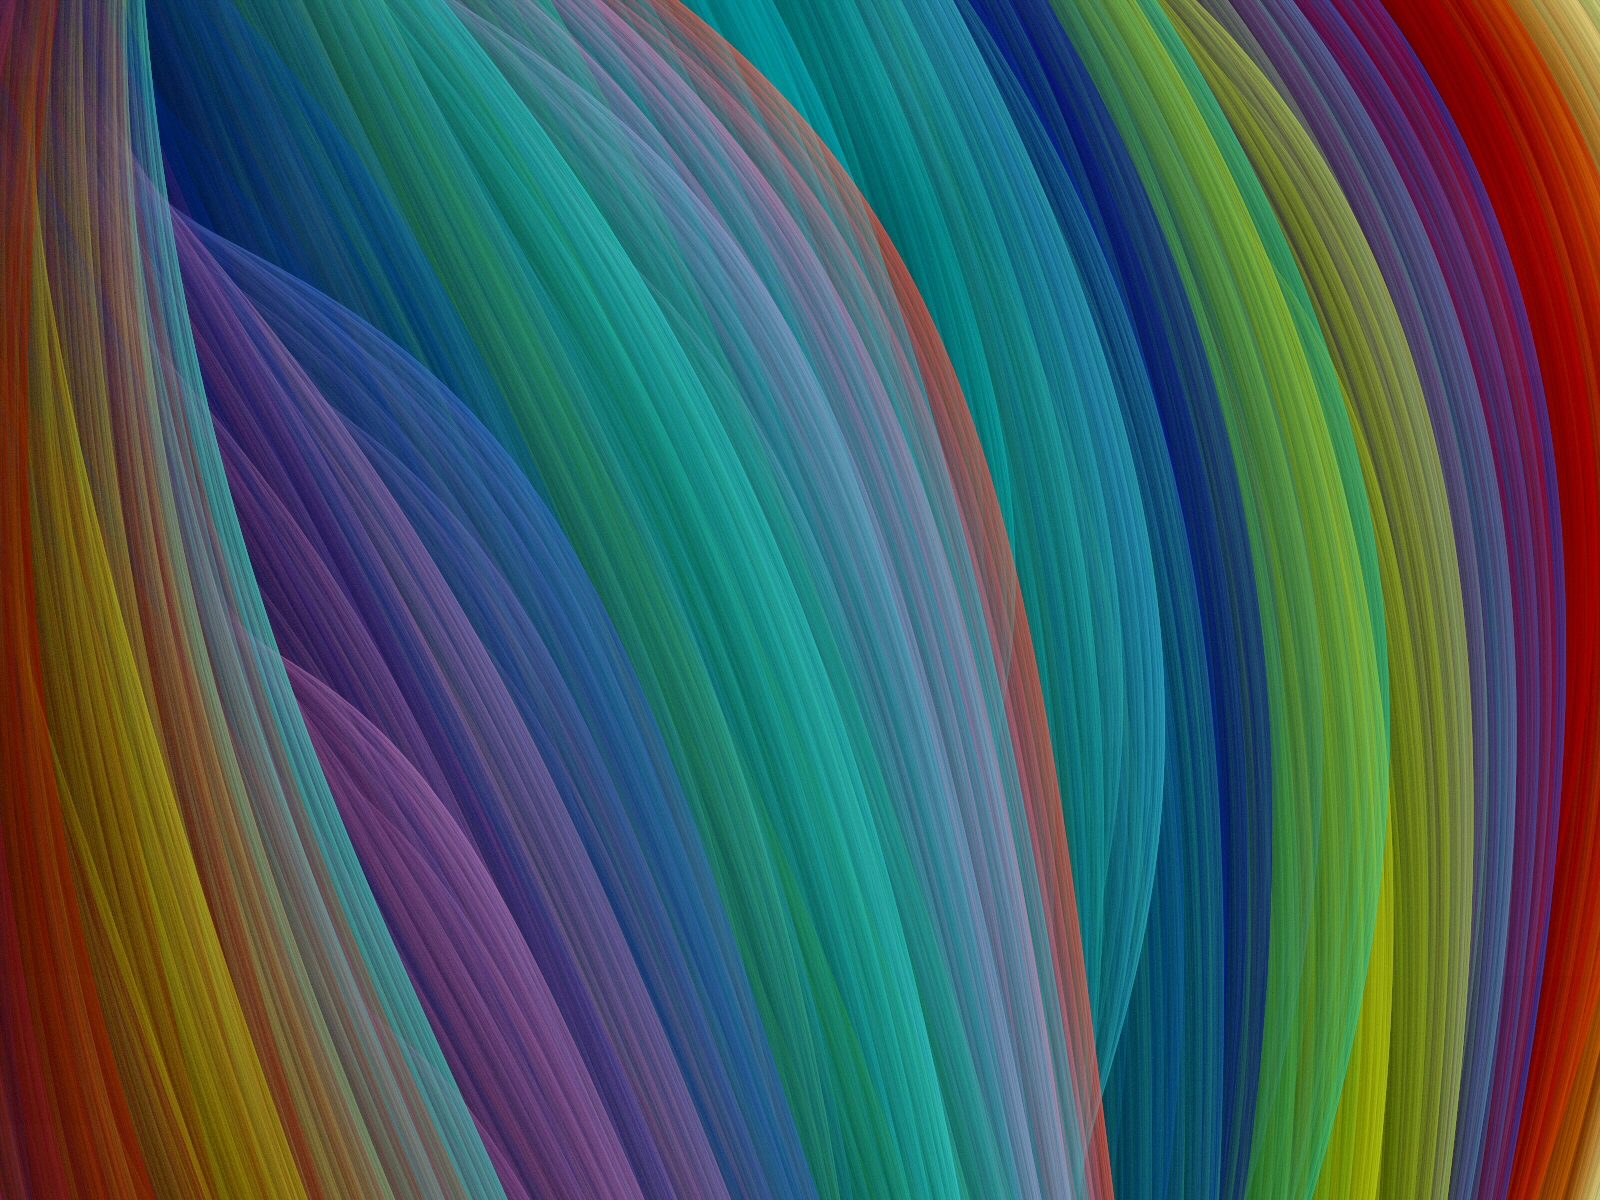 Rainbow Silk Threads by Thelma1